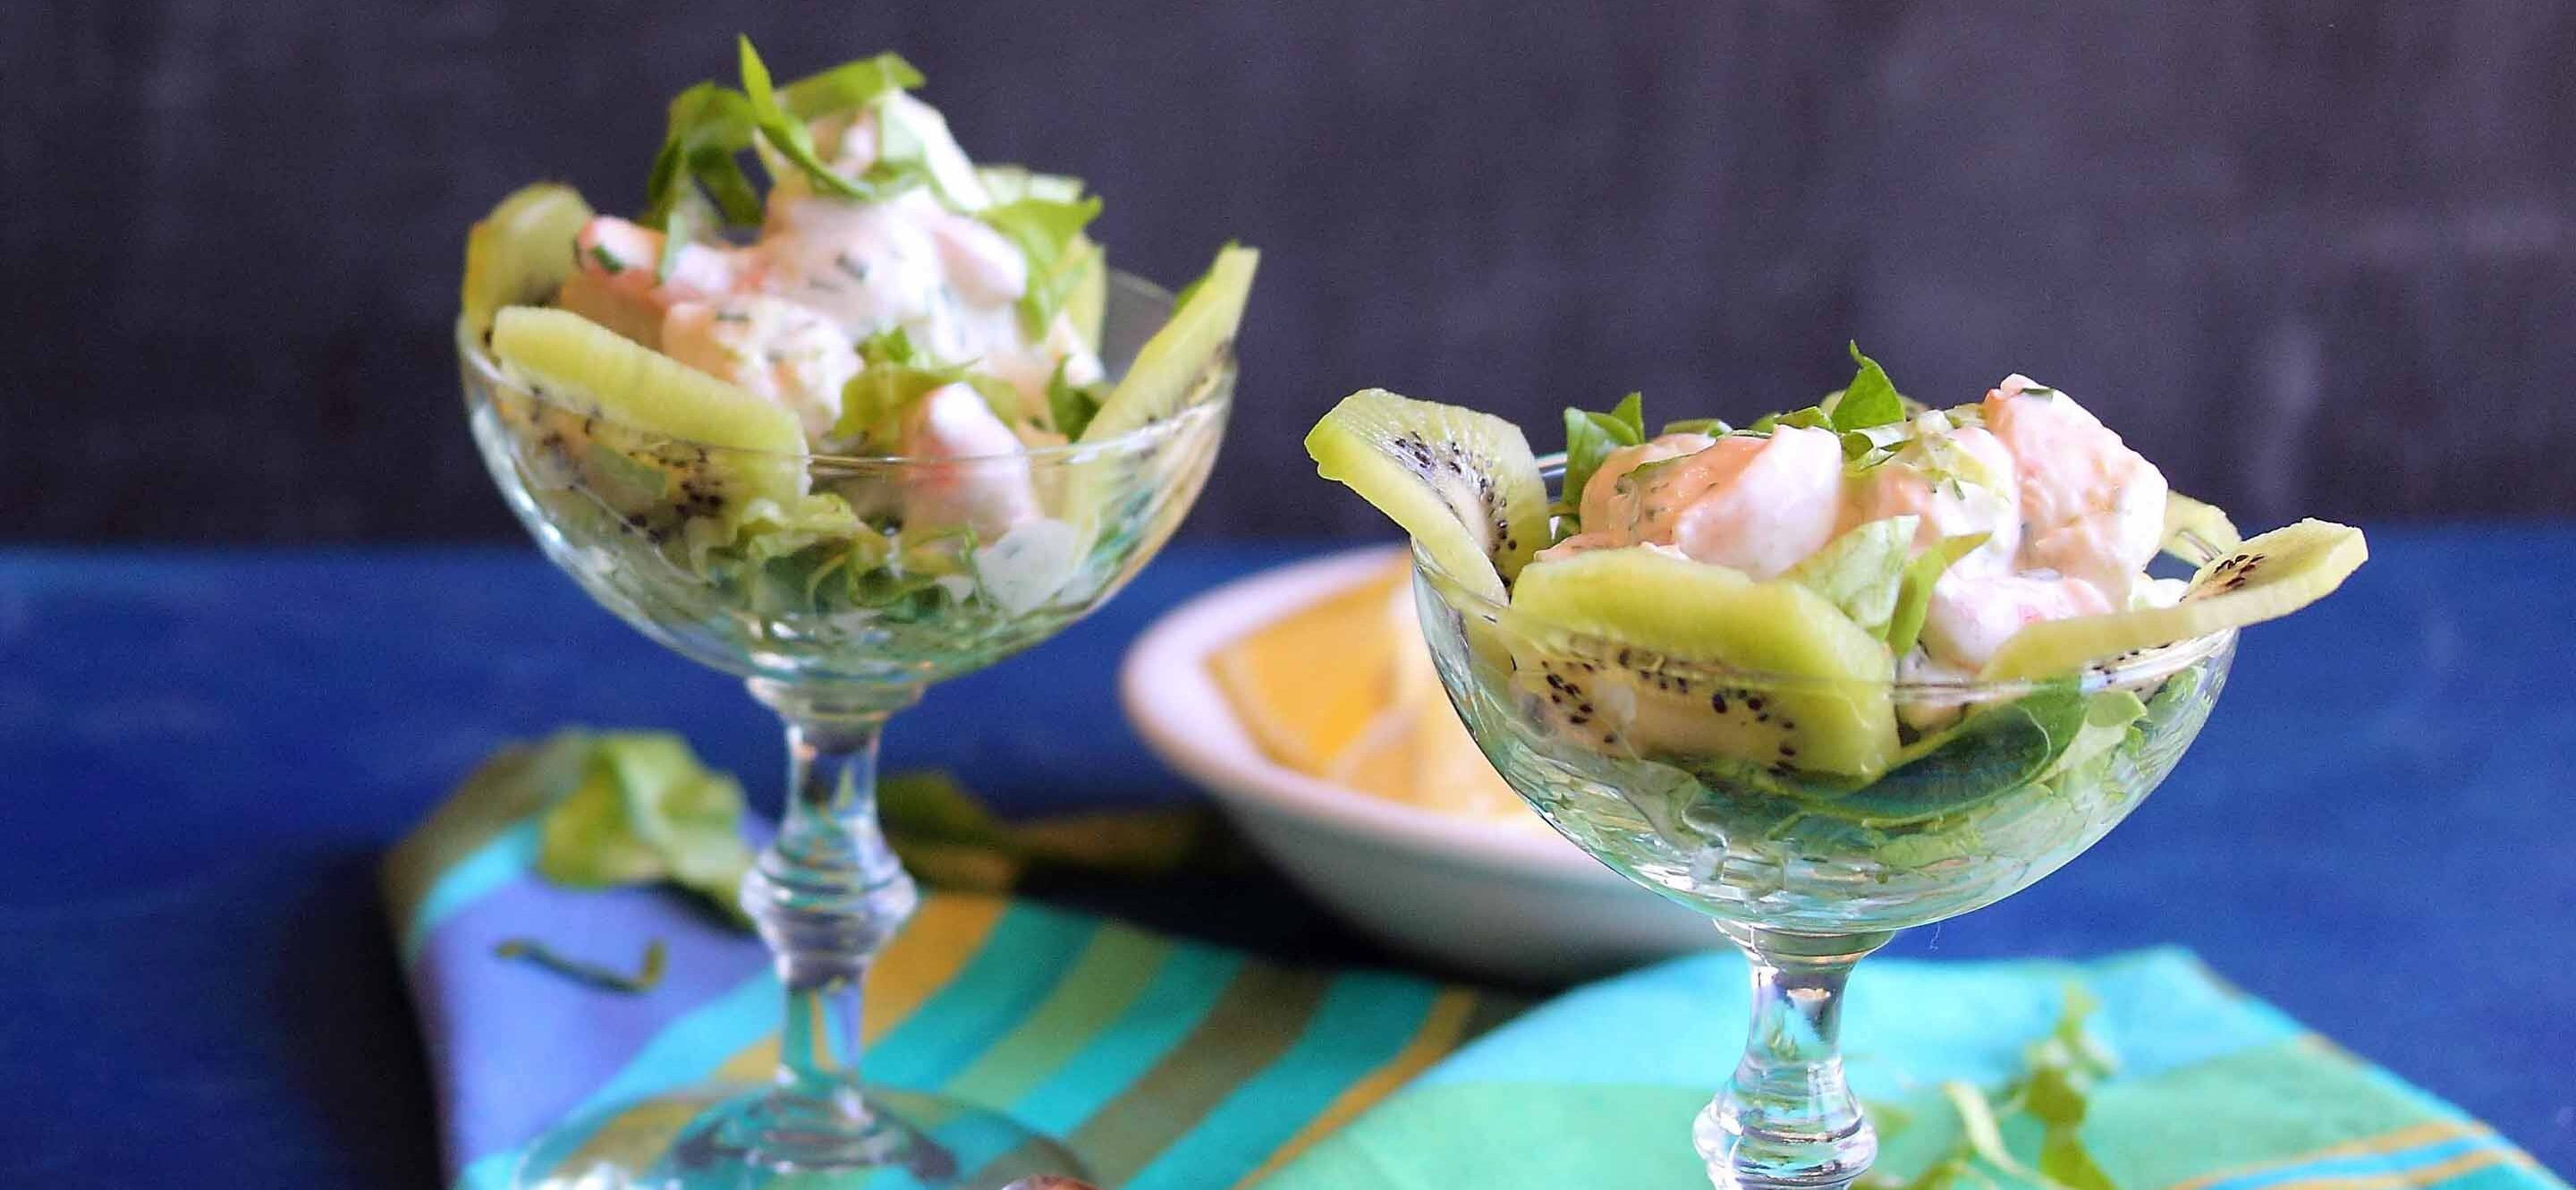 prawns cocktail with kiwi